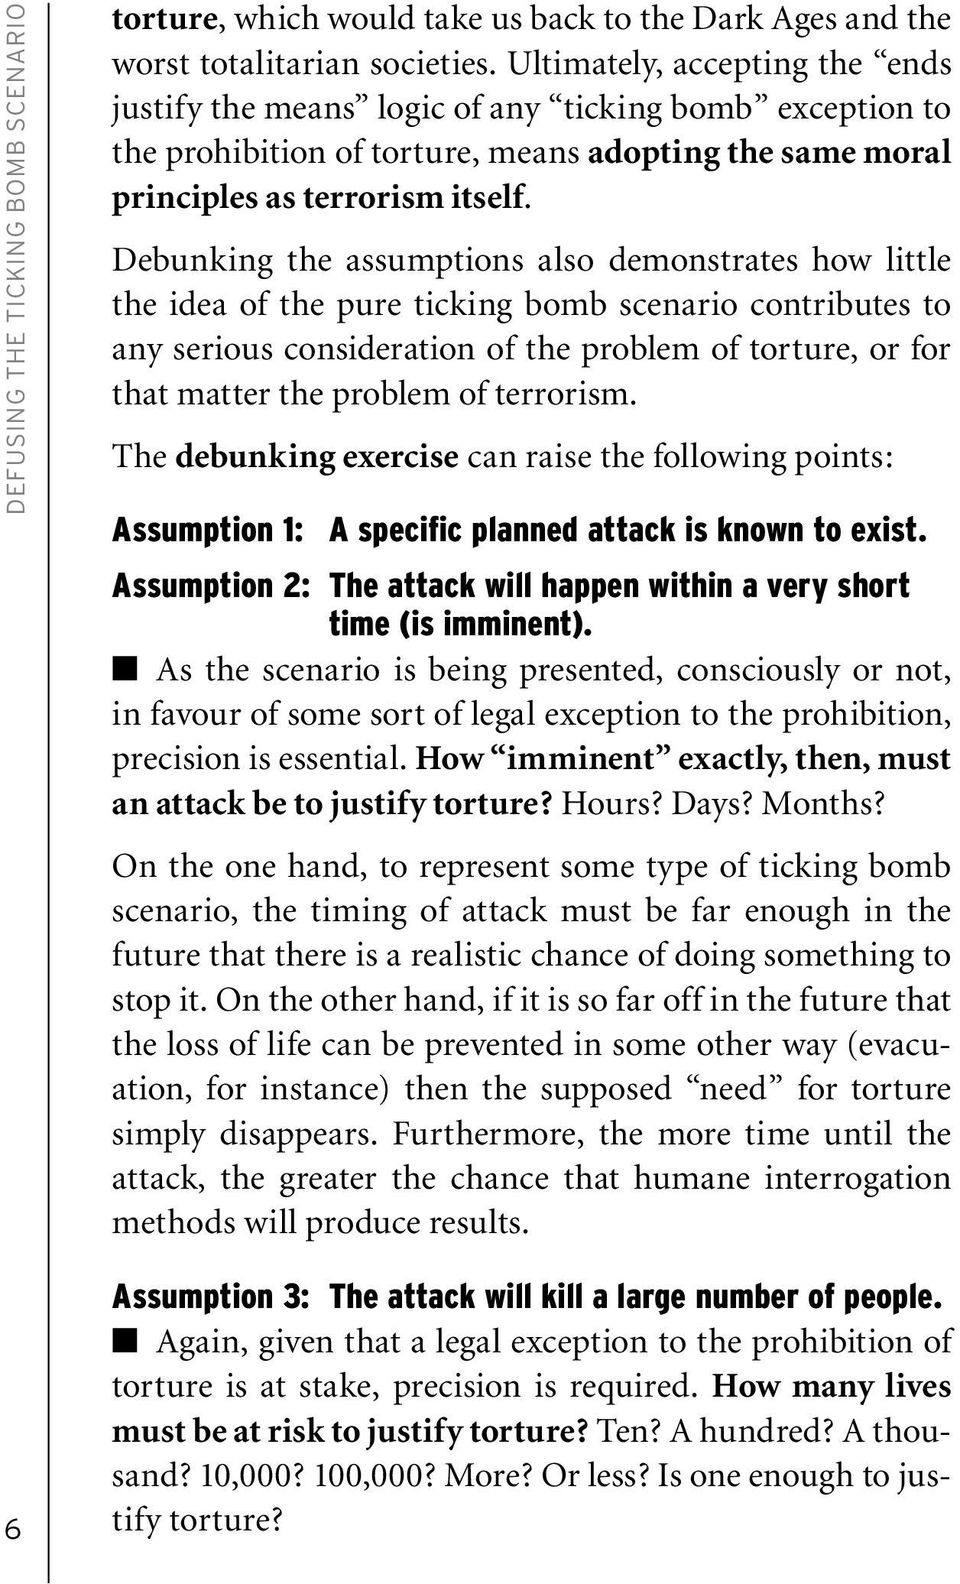 Debunking the assumptions also demonstrates how little the idea of the pure ticking bomb scenario contributes to any serious consideration of the problem of torture, or for that matter the problem of